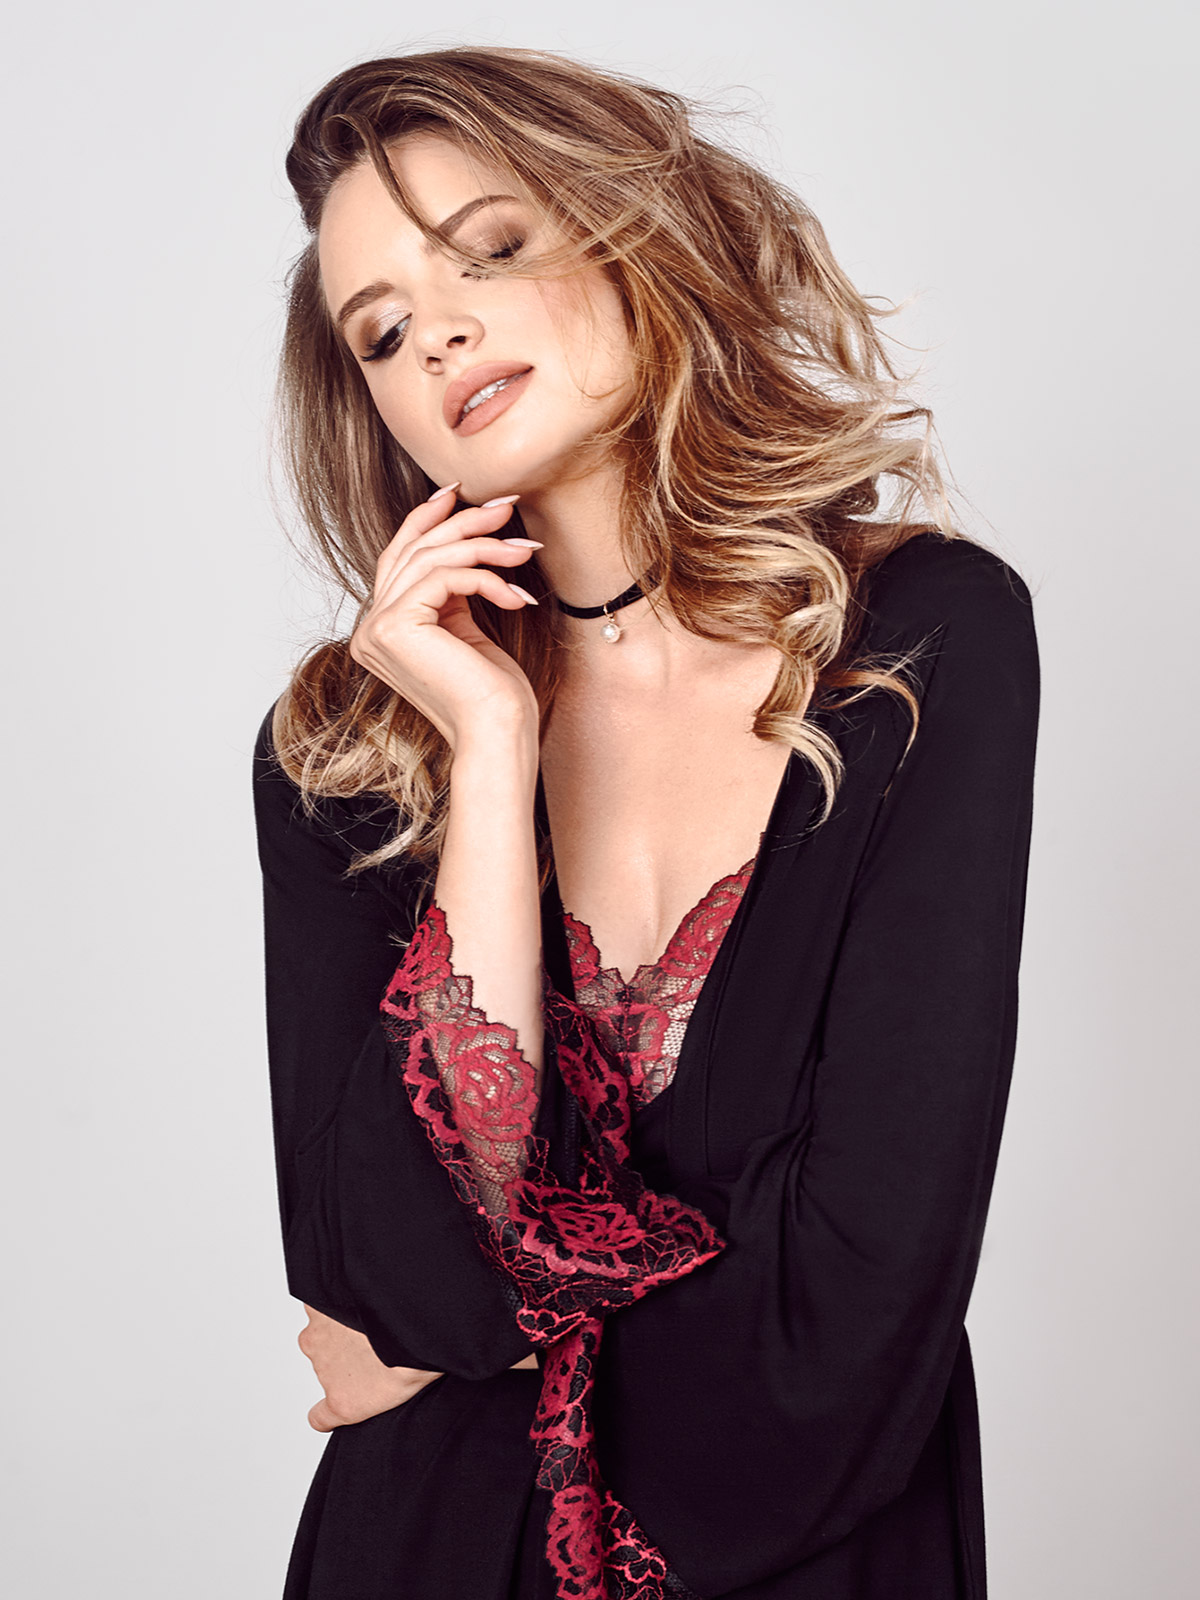 IC 012 Chemise<br />02 Black, 07 Ruby, 28 Cappuccino<br />IC 014 Vestaglia<br />02 Black, 07 Ruby, 28 Cappuccino